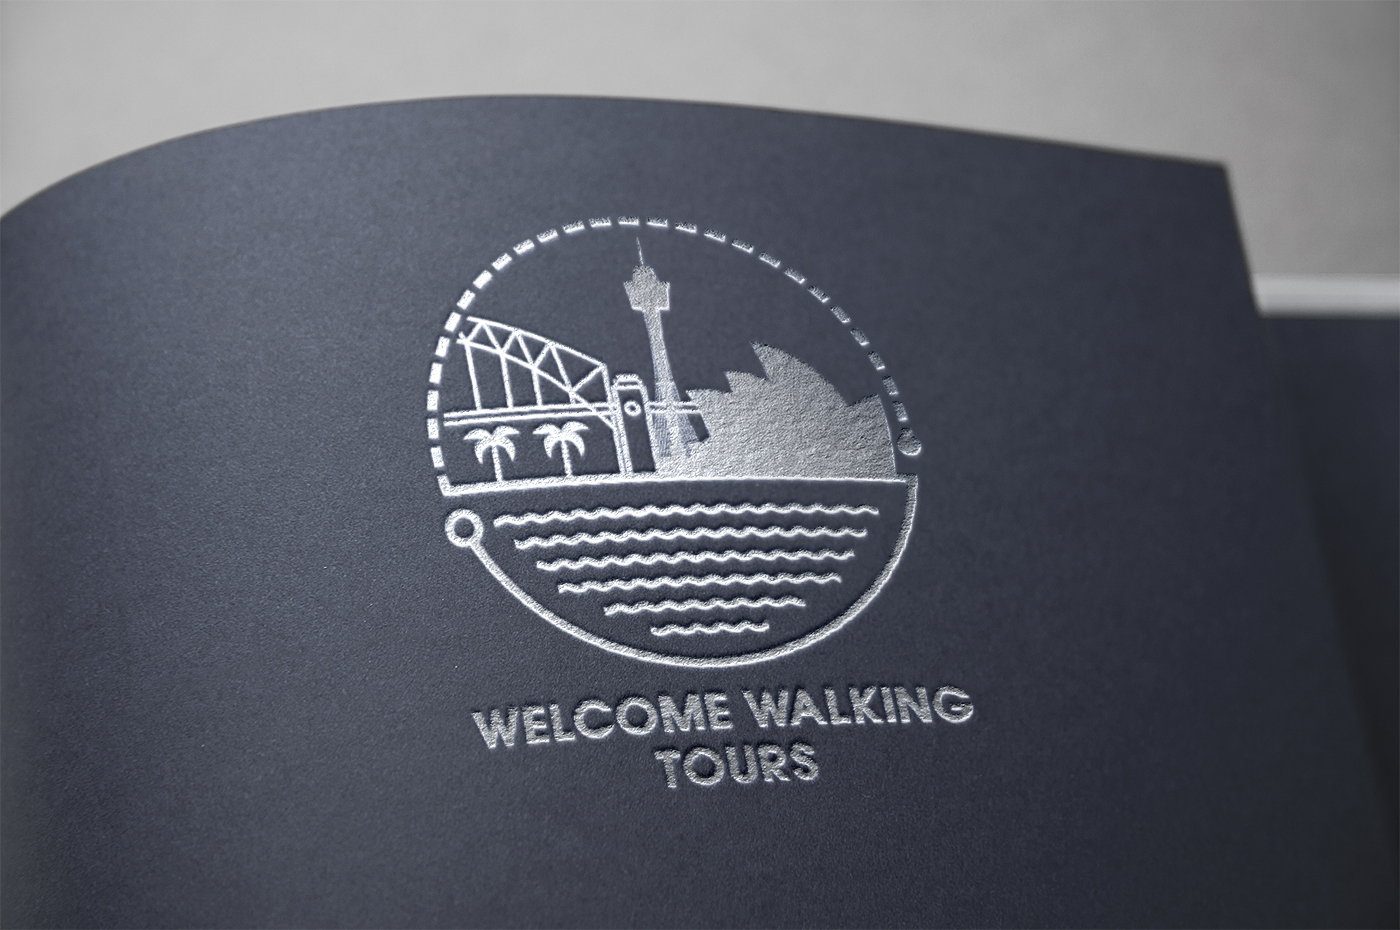 Welcome Walking Tours